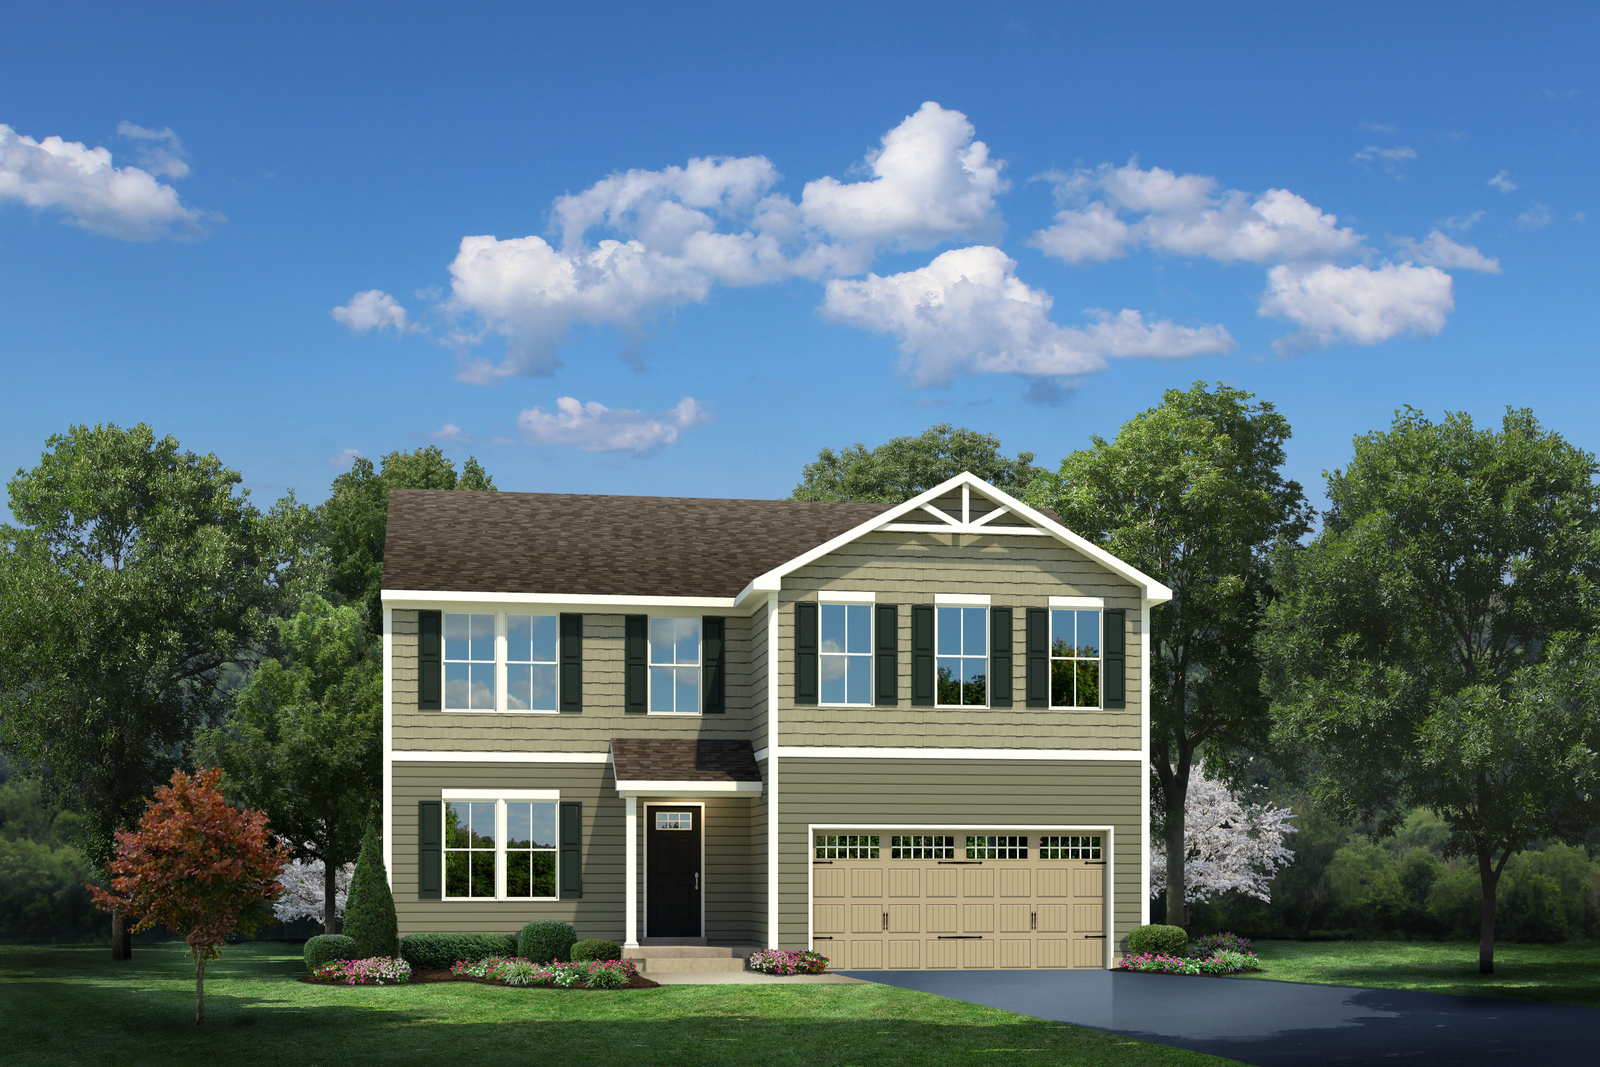 New Homes For Sale In Cleveland County Nc